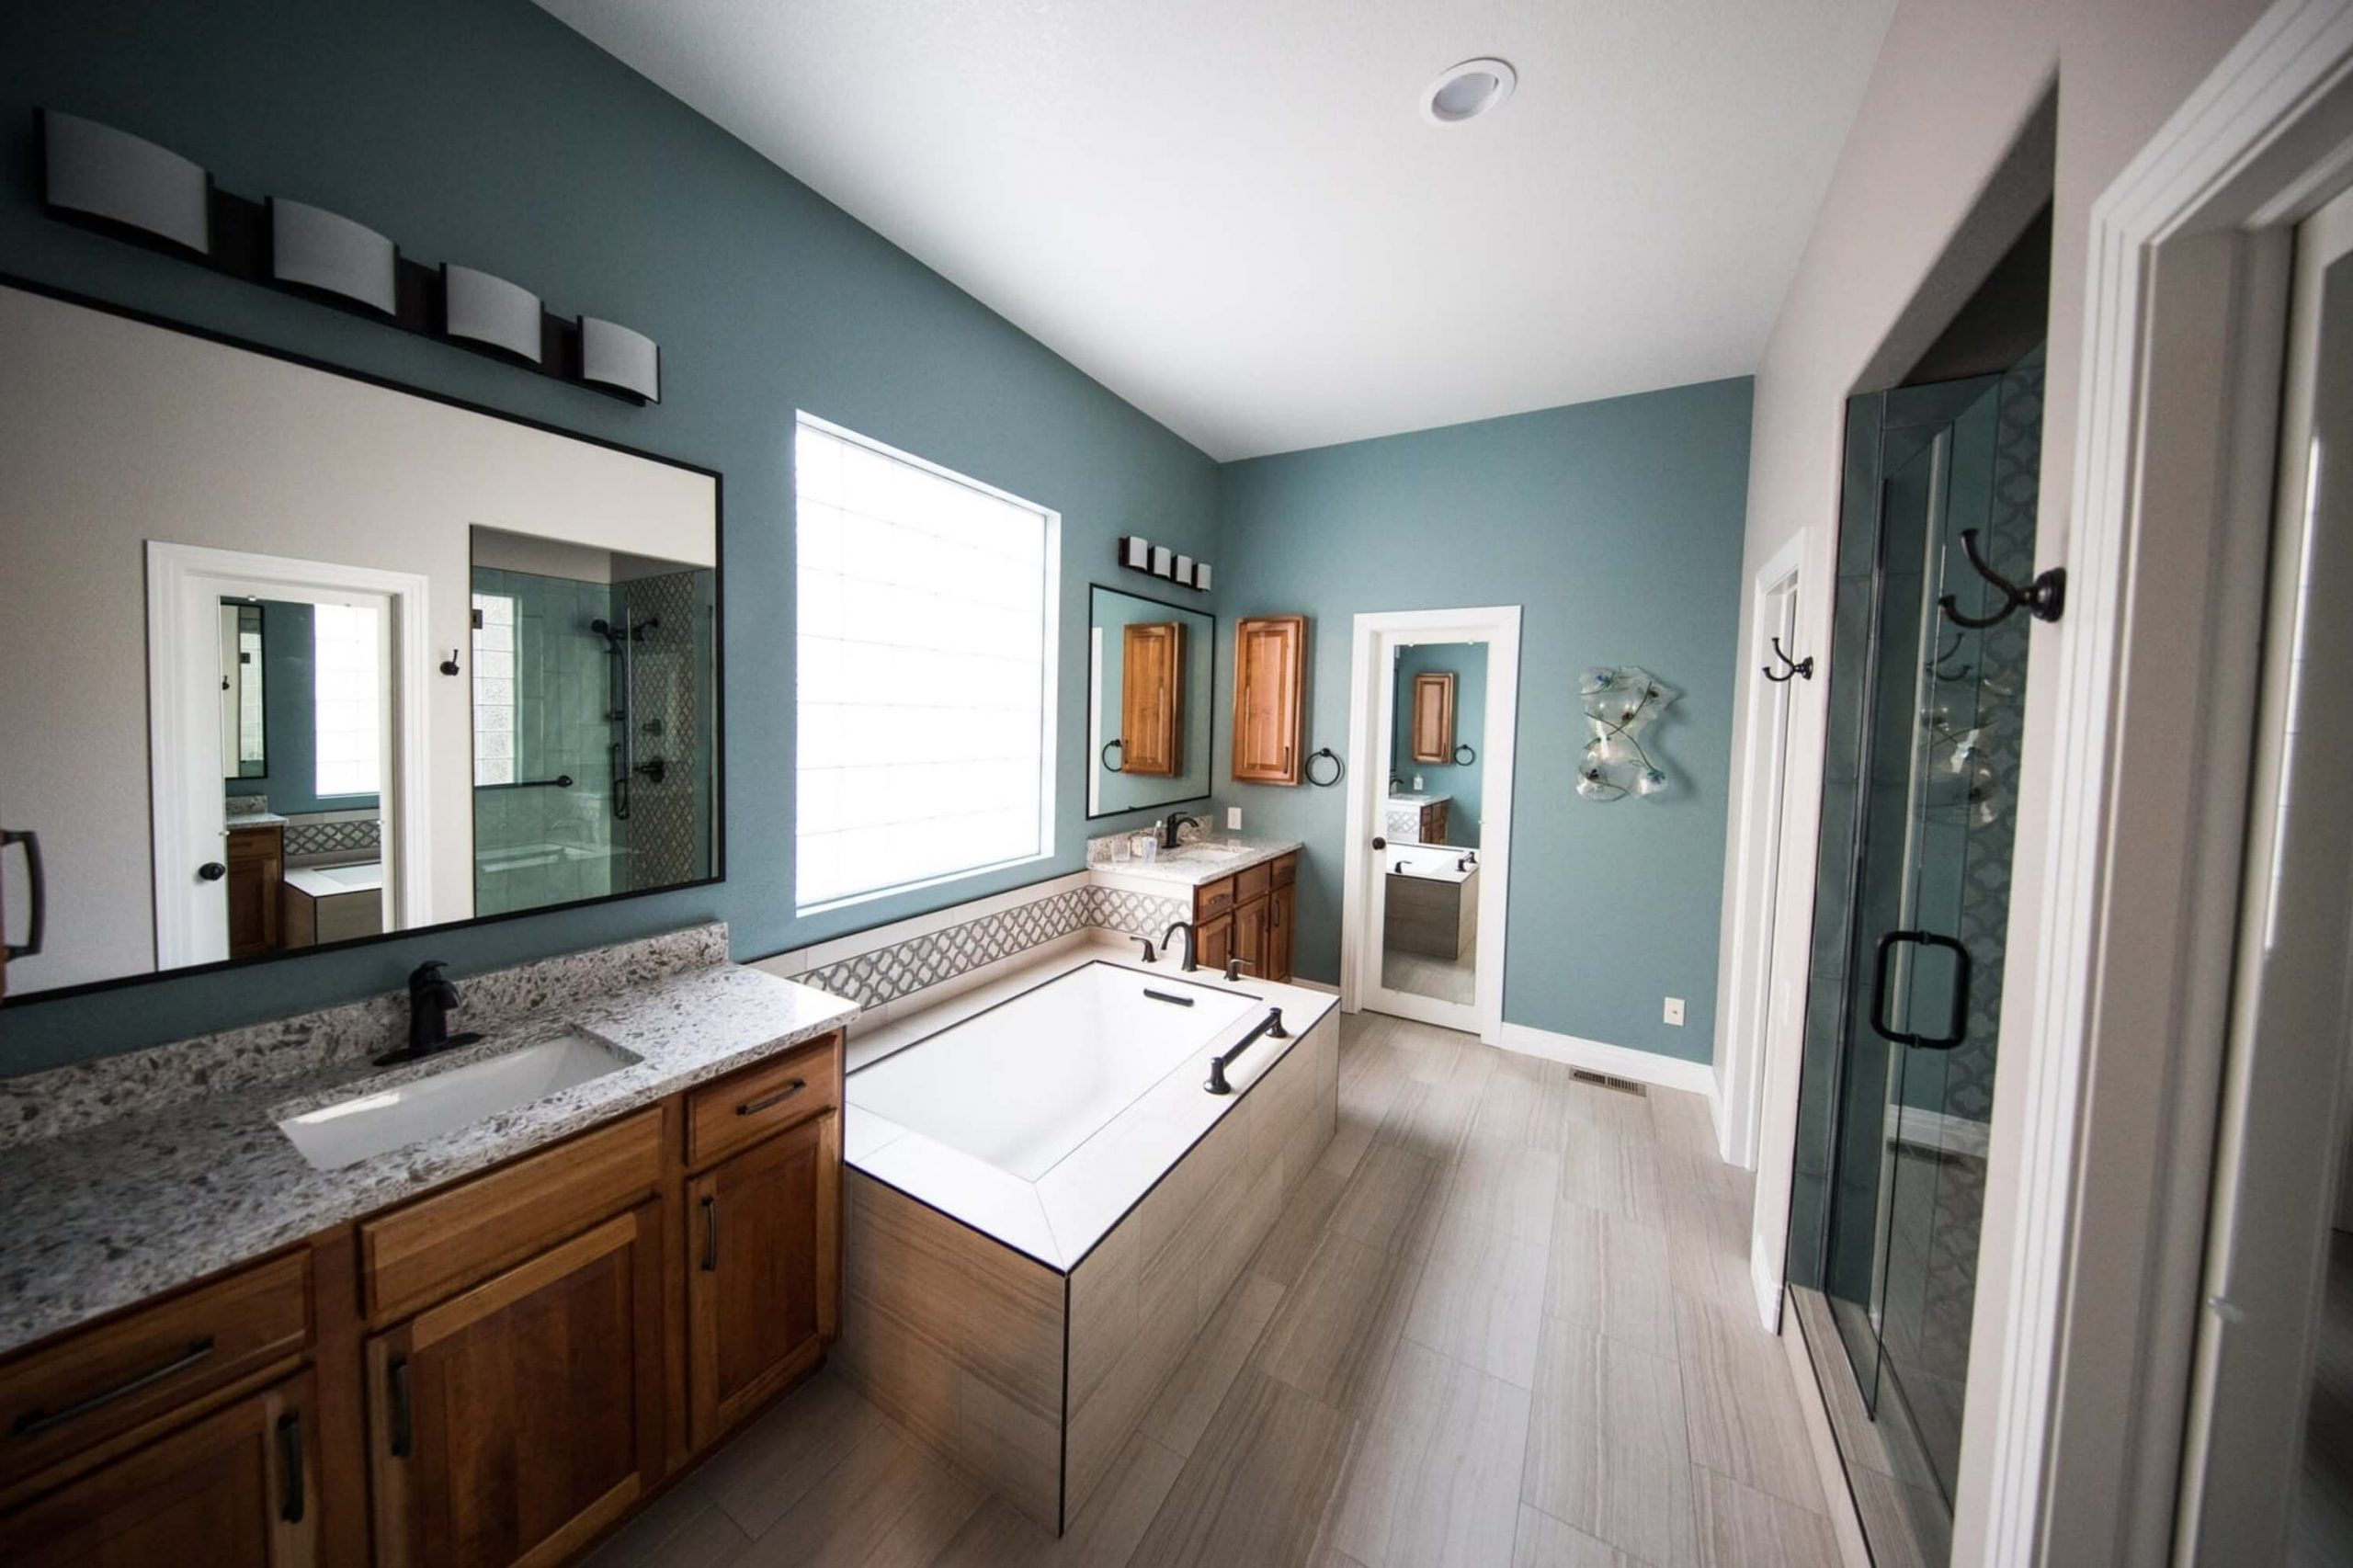 6 Ways to Make a WOW Statement With Your Bathroom Renovation